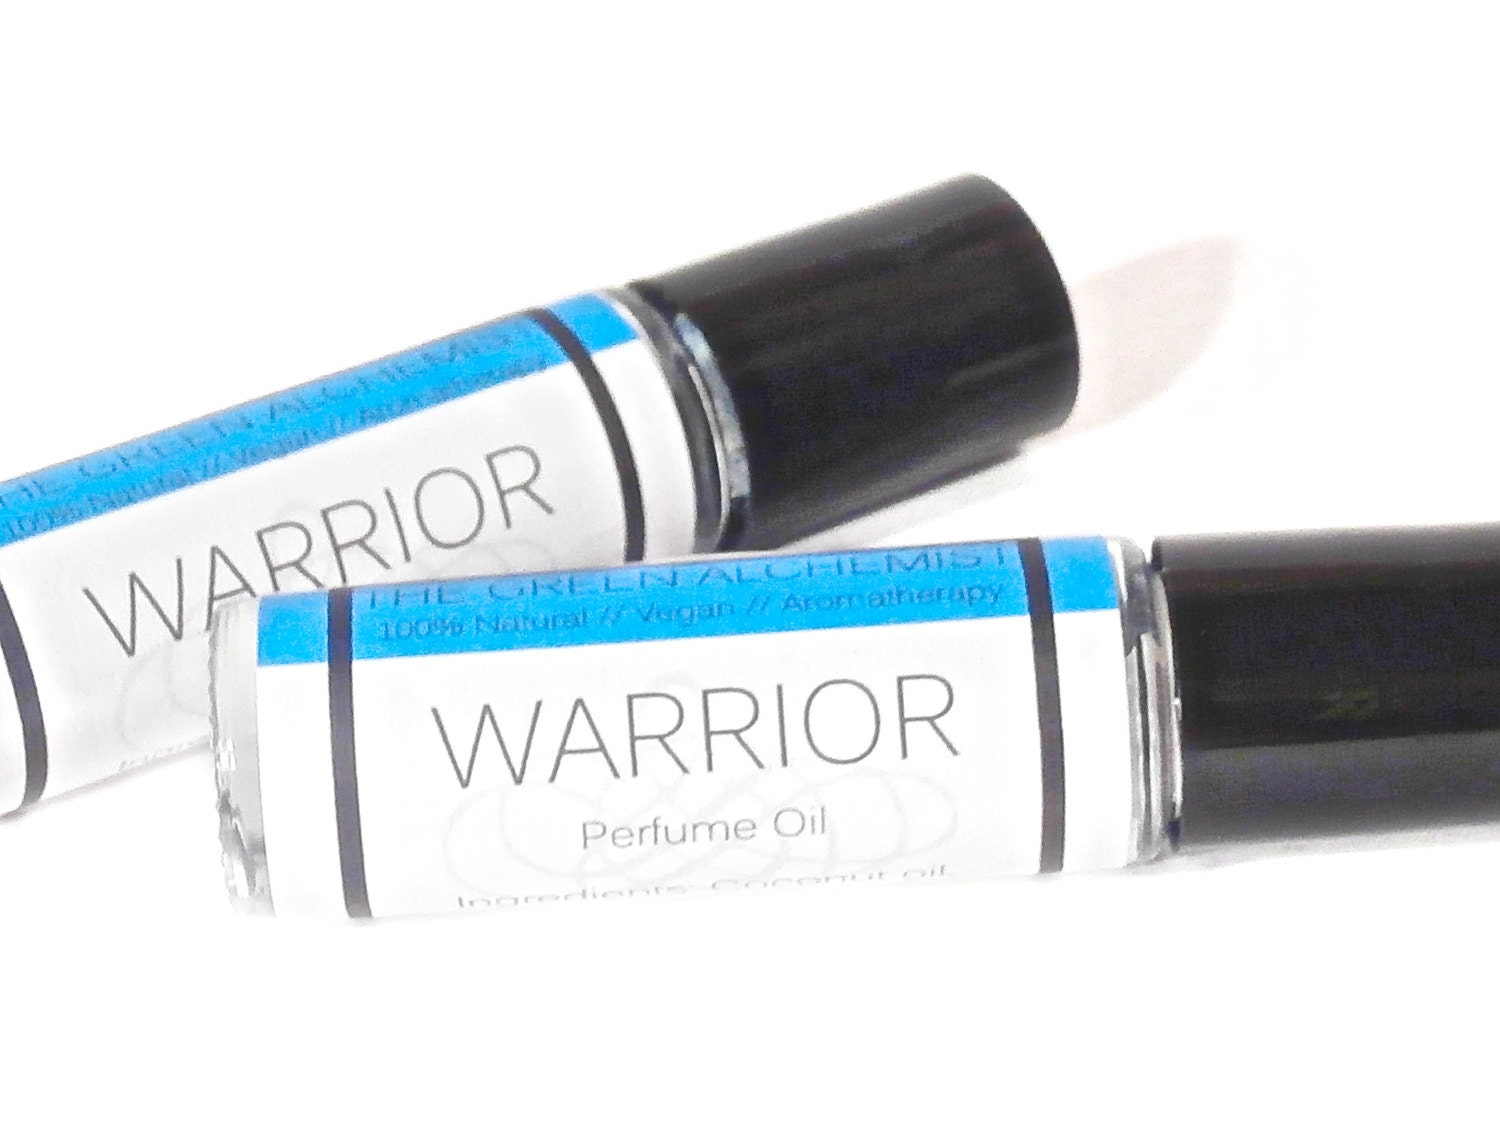 Warrior Cologne Oil Sample // Men's Roll On Cologne Oil // Phthalate Free Fragrance // Vegan // 2 Sample Vials - TheGreenAlchemist